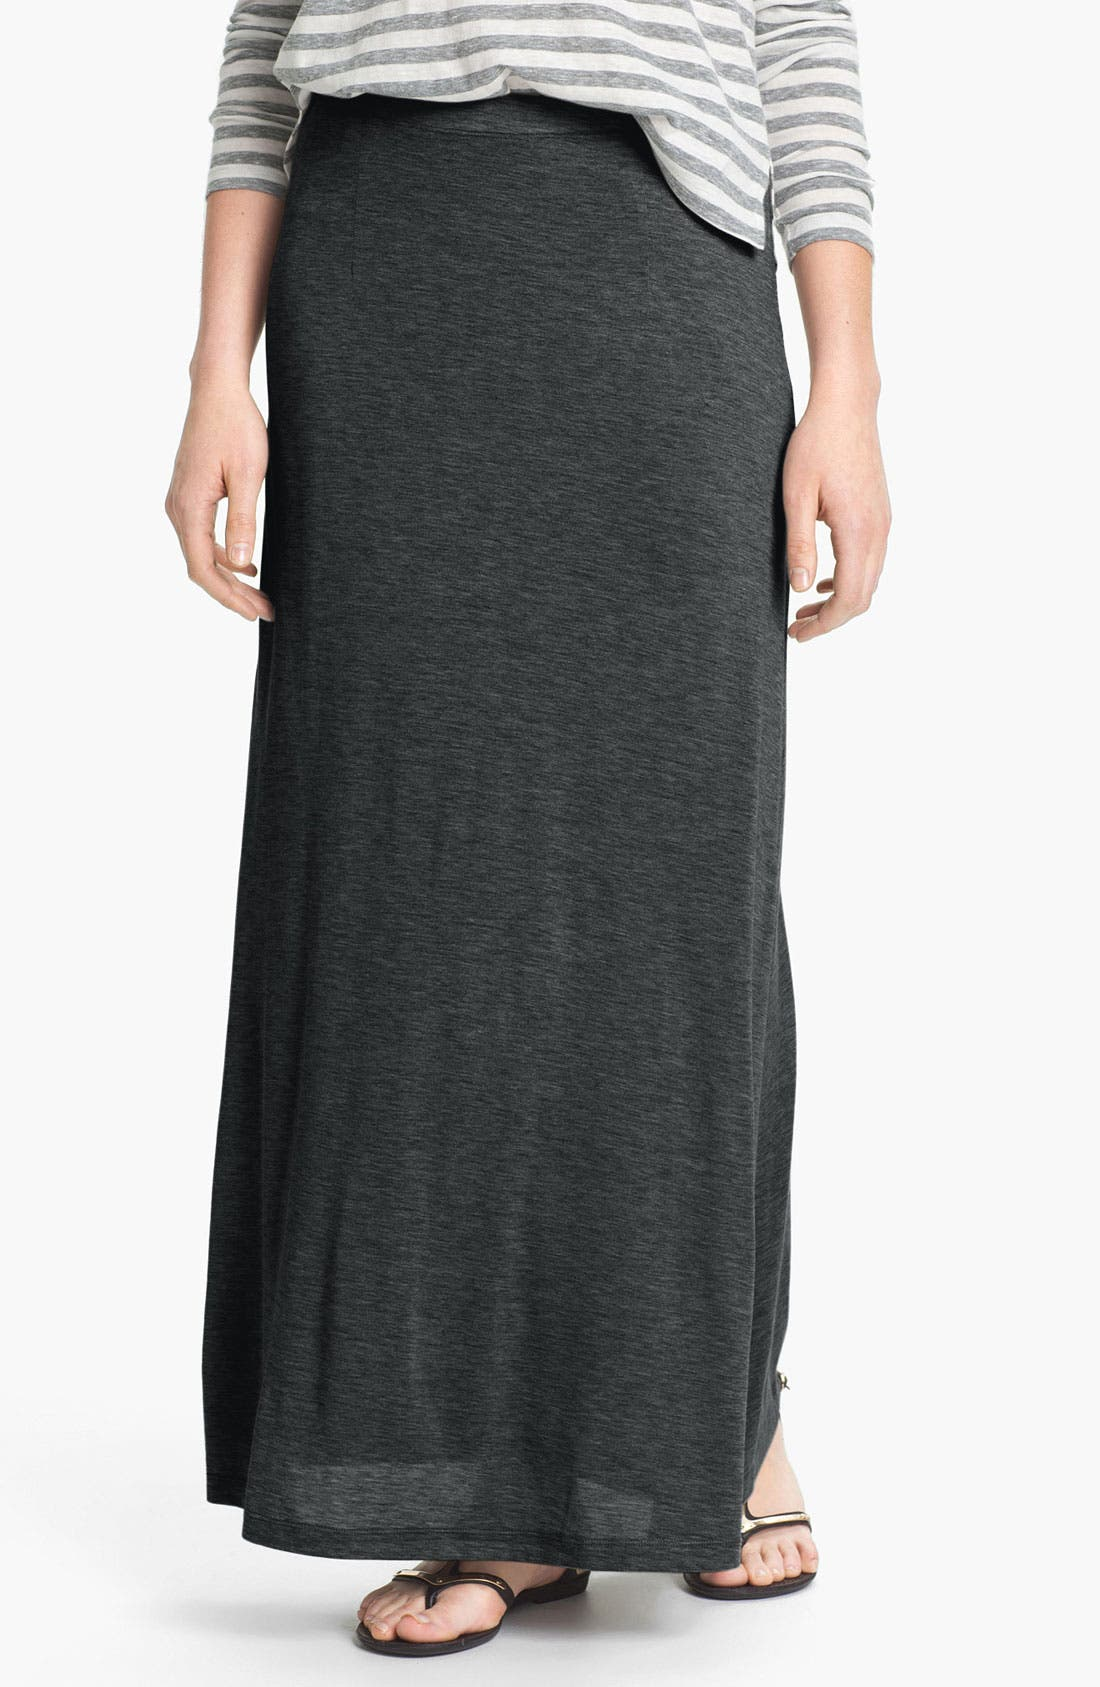 Alternate Image 1 Selected - Eileen Fisher Silk & Cotton Jersey Maxi Skirt